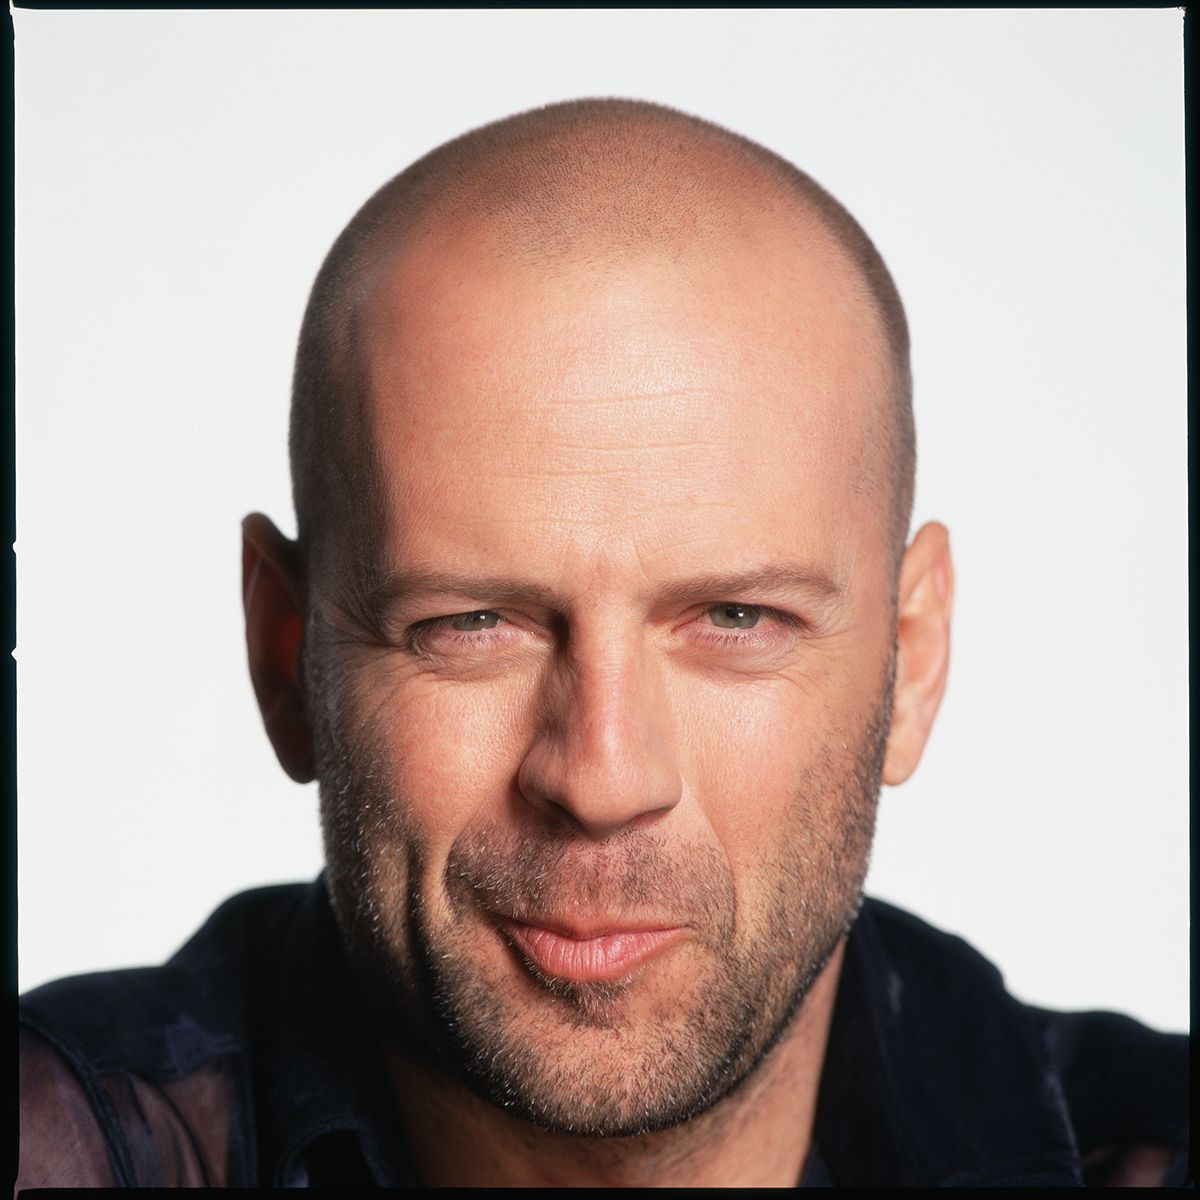 Bruce Willis | Bald with beard, Bald men with beards